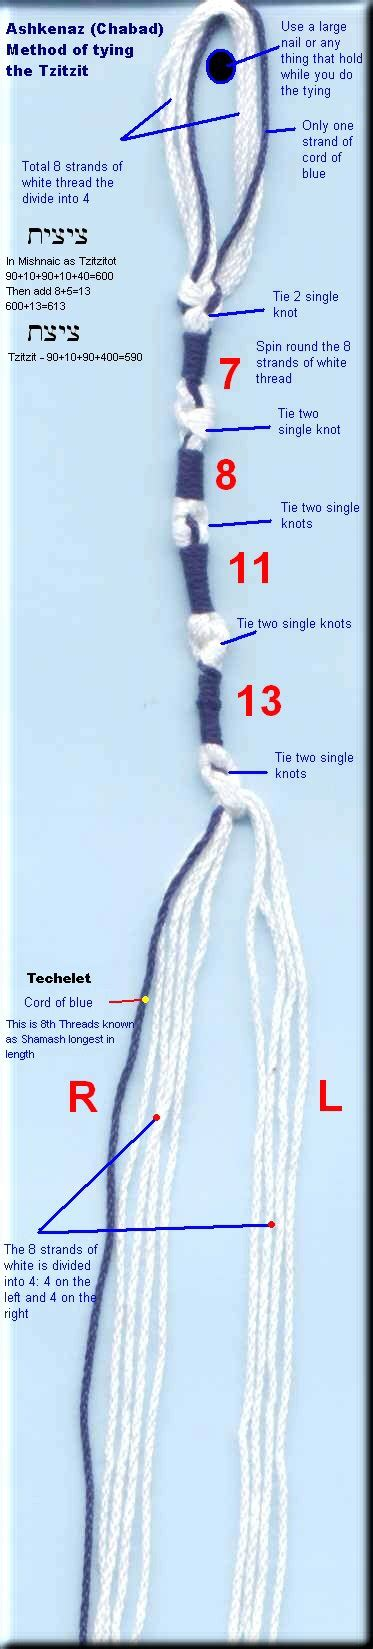 how to tie the tzitzit hyakinthinos tefillin about tallit